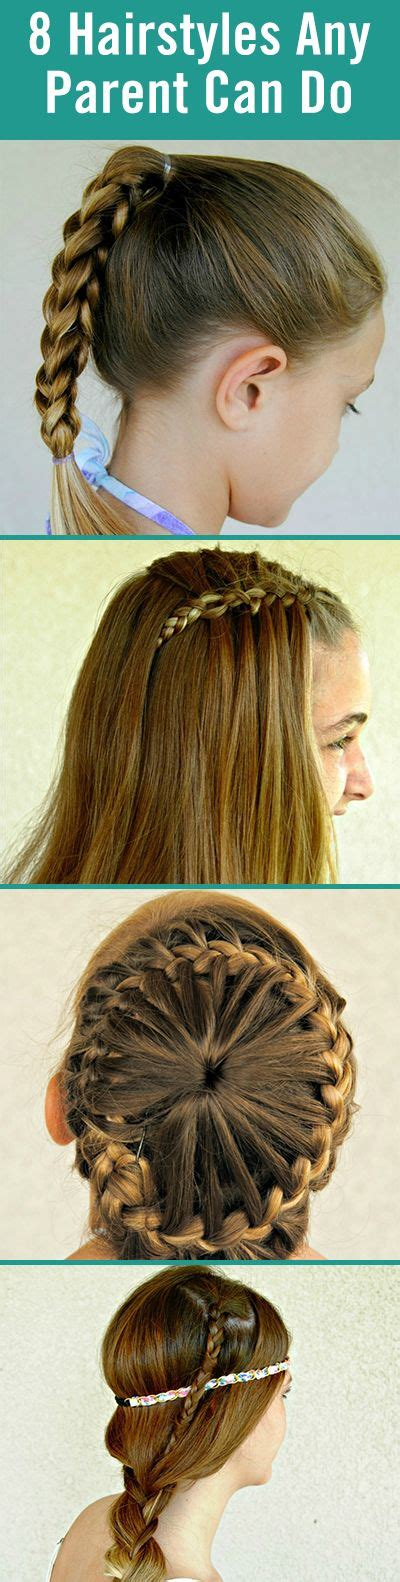 Easy Hairstyles For To Do By Themselves by 8 Hairstyles Any Parent Can Do Themselves